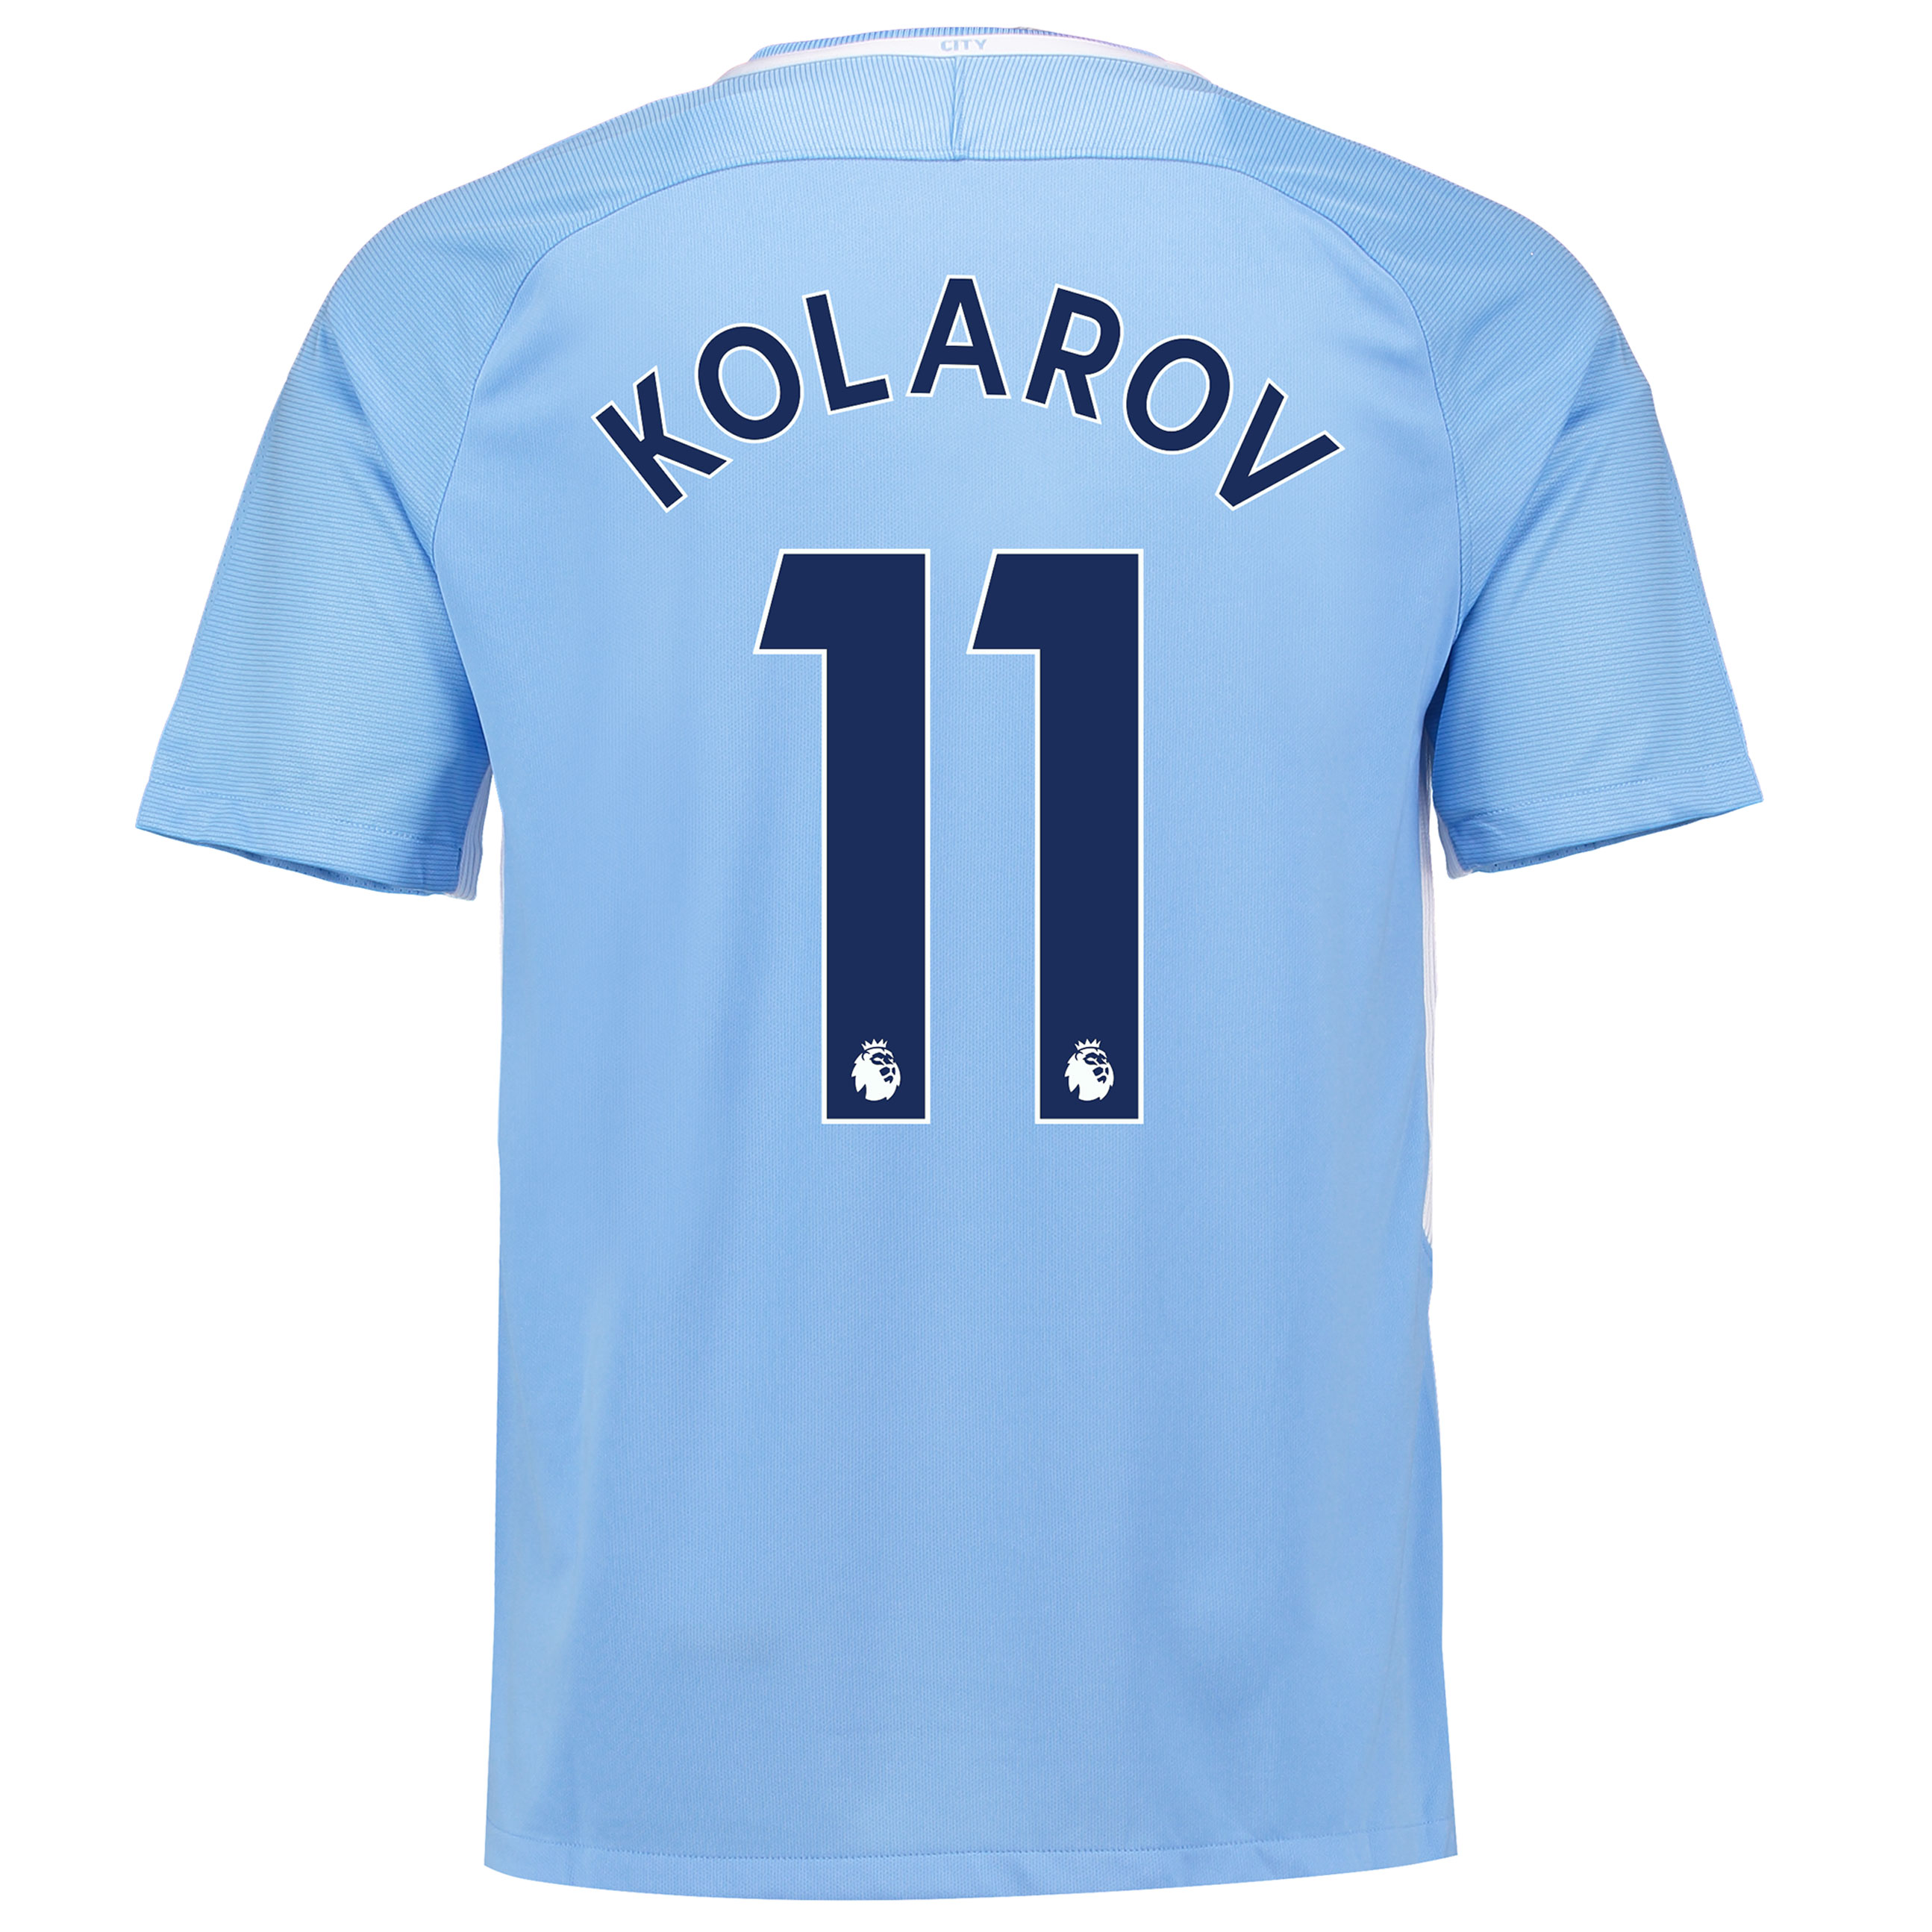 Manchester City Home Stadium Shirt 2017-18 with Kolarov 11 printing